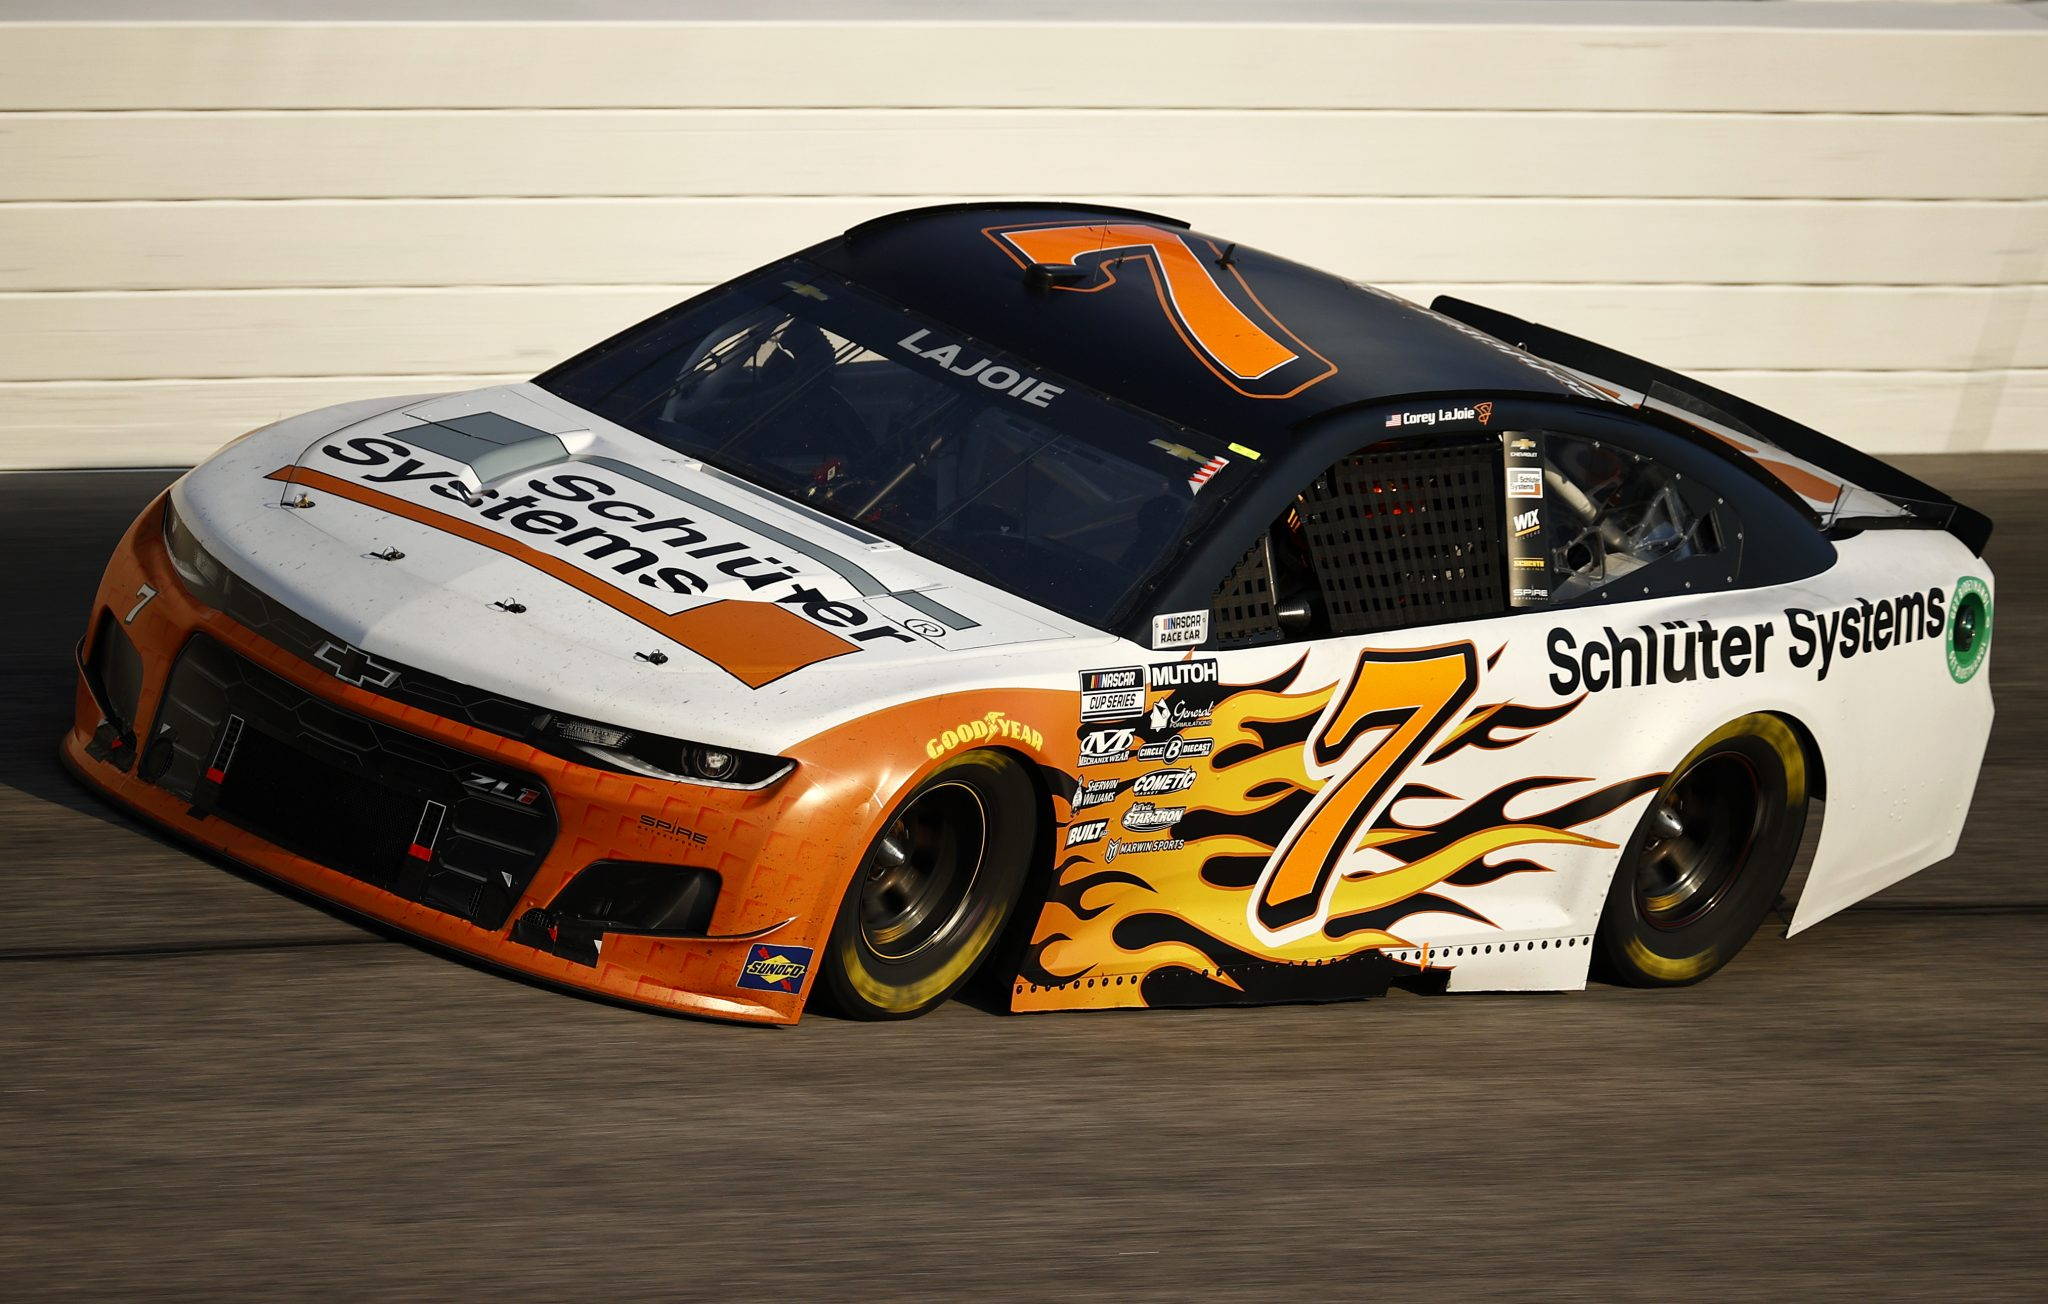 DARLINGTON, SOUTH CAROLINA - SEPTEMBER 05: Corey LaJoie, driver of the #7 Schluter Systems Chevrolet, drives during the NASCAR Cup Series Cook Out Southern 500 at Darlington Raceway on September 05, 2021 in Darlington, South Carolina. (Photo by Jared C. Tilton/Getty Images)   Getty Images